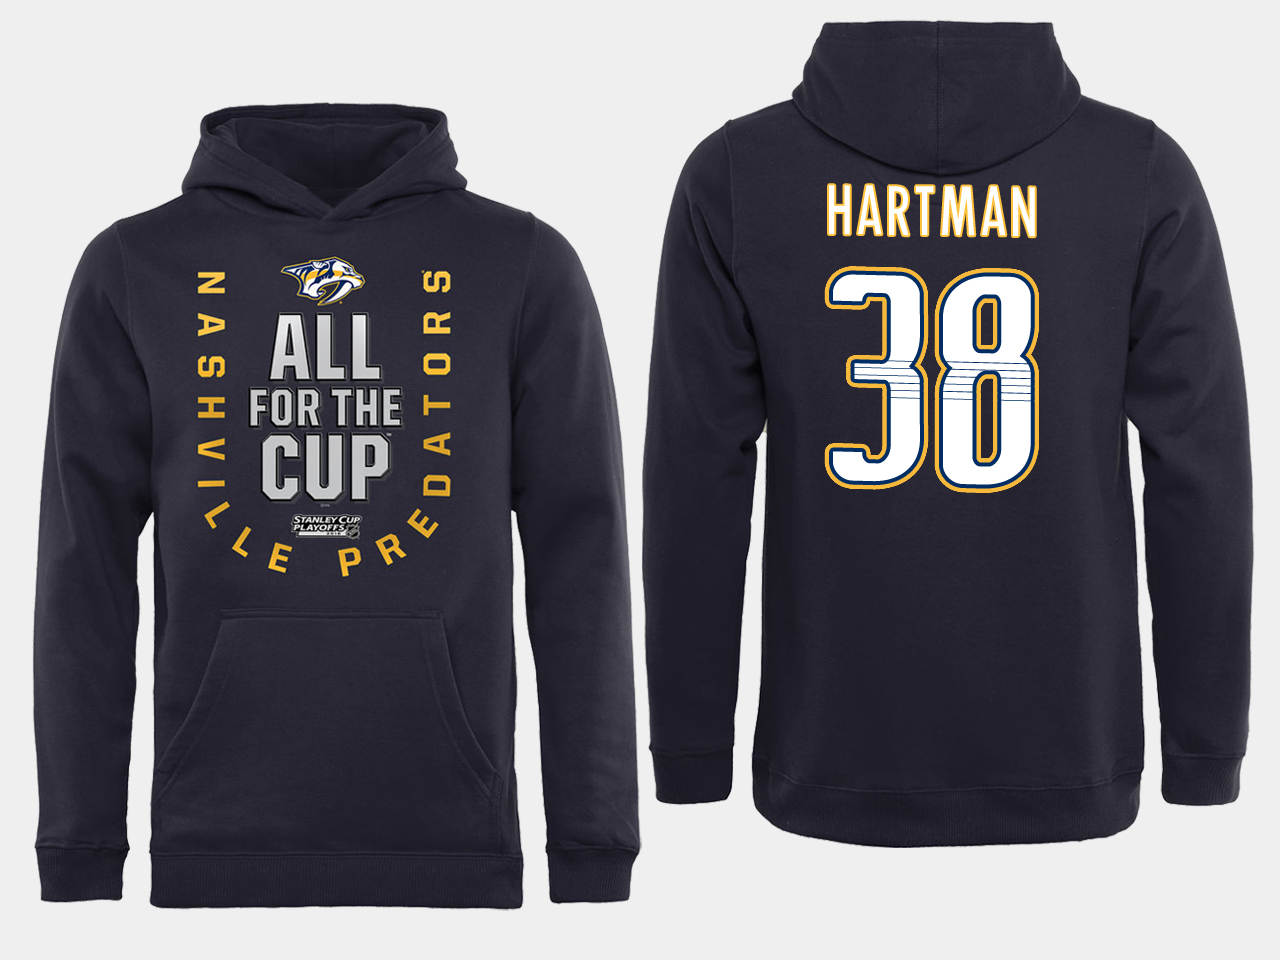 Men NHL Adidas Nashville Predators 38 Hartman black ALL for the Cup hoodie